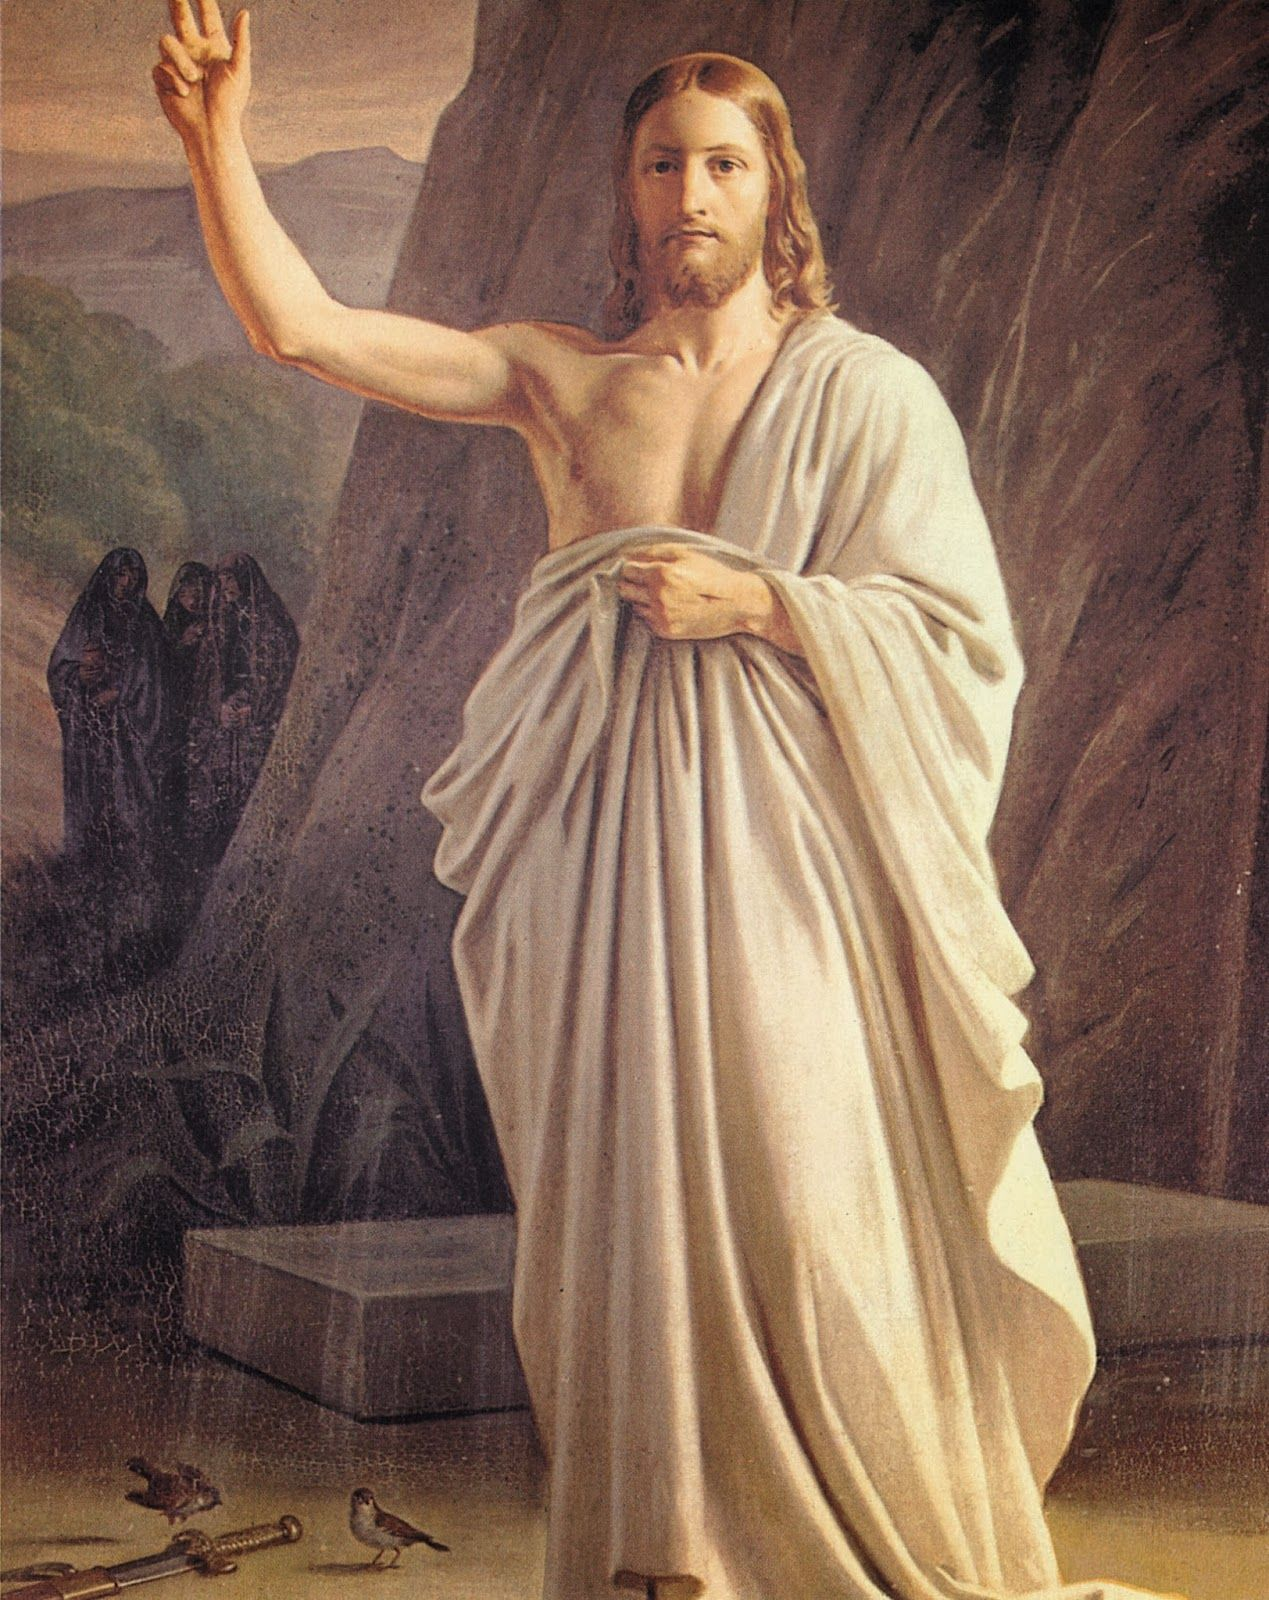 the resurrection of jesus as the key to being a christian Resurrection: the most important truth by sean mcdowell article about:  that he was buried, that he was raised on the third day the resurrection is the most important truth of the christian faith if christ has not risen, then our faith is useless (1 corinthians 15:14)  key points the resurrection of jesus means that  our sins are.